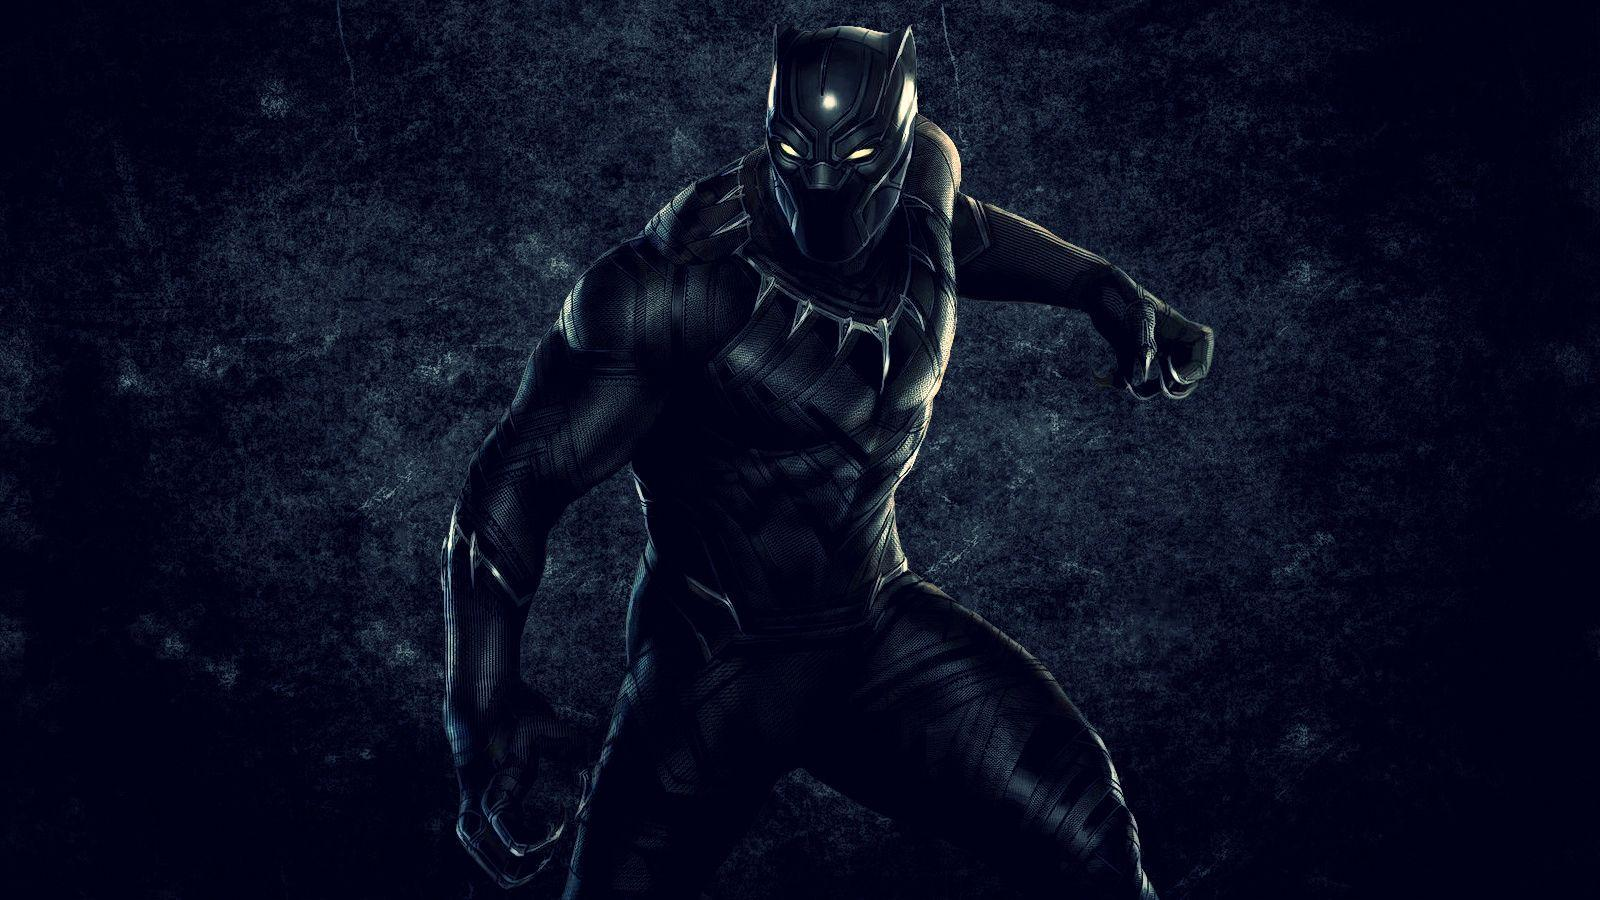 The Black Panther Wallpapers - Wallpaper Cave